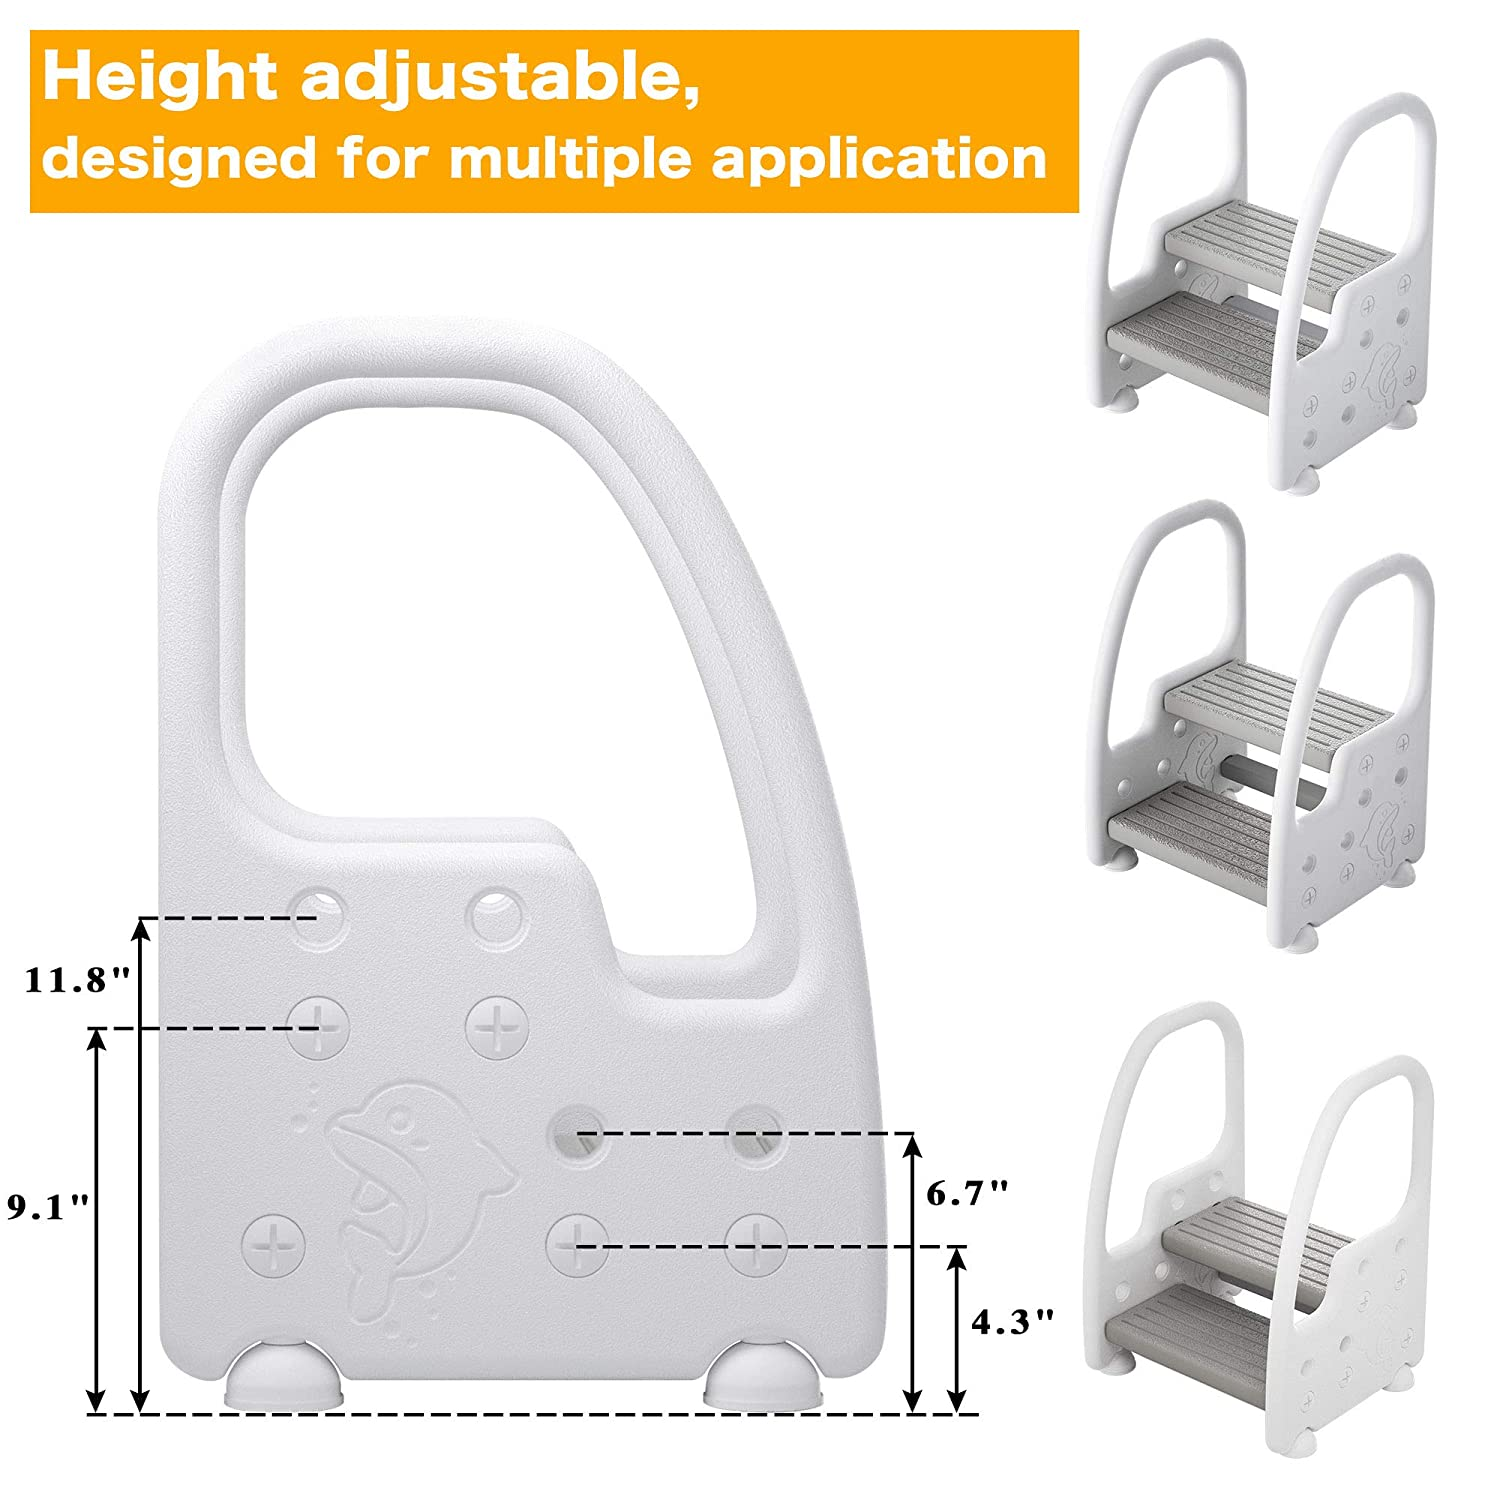 Height Adjustable Two Step Standing Stool with Handles Non-Slip Safety for Toddlers Children Kids Potty Training Kitchen Helper Learning Tower, Mangohood : Baby